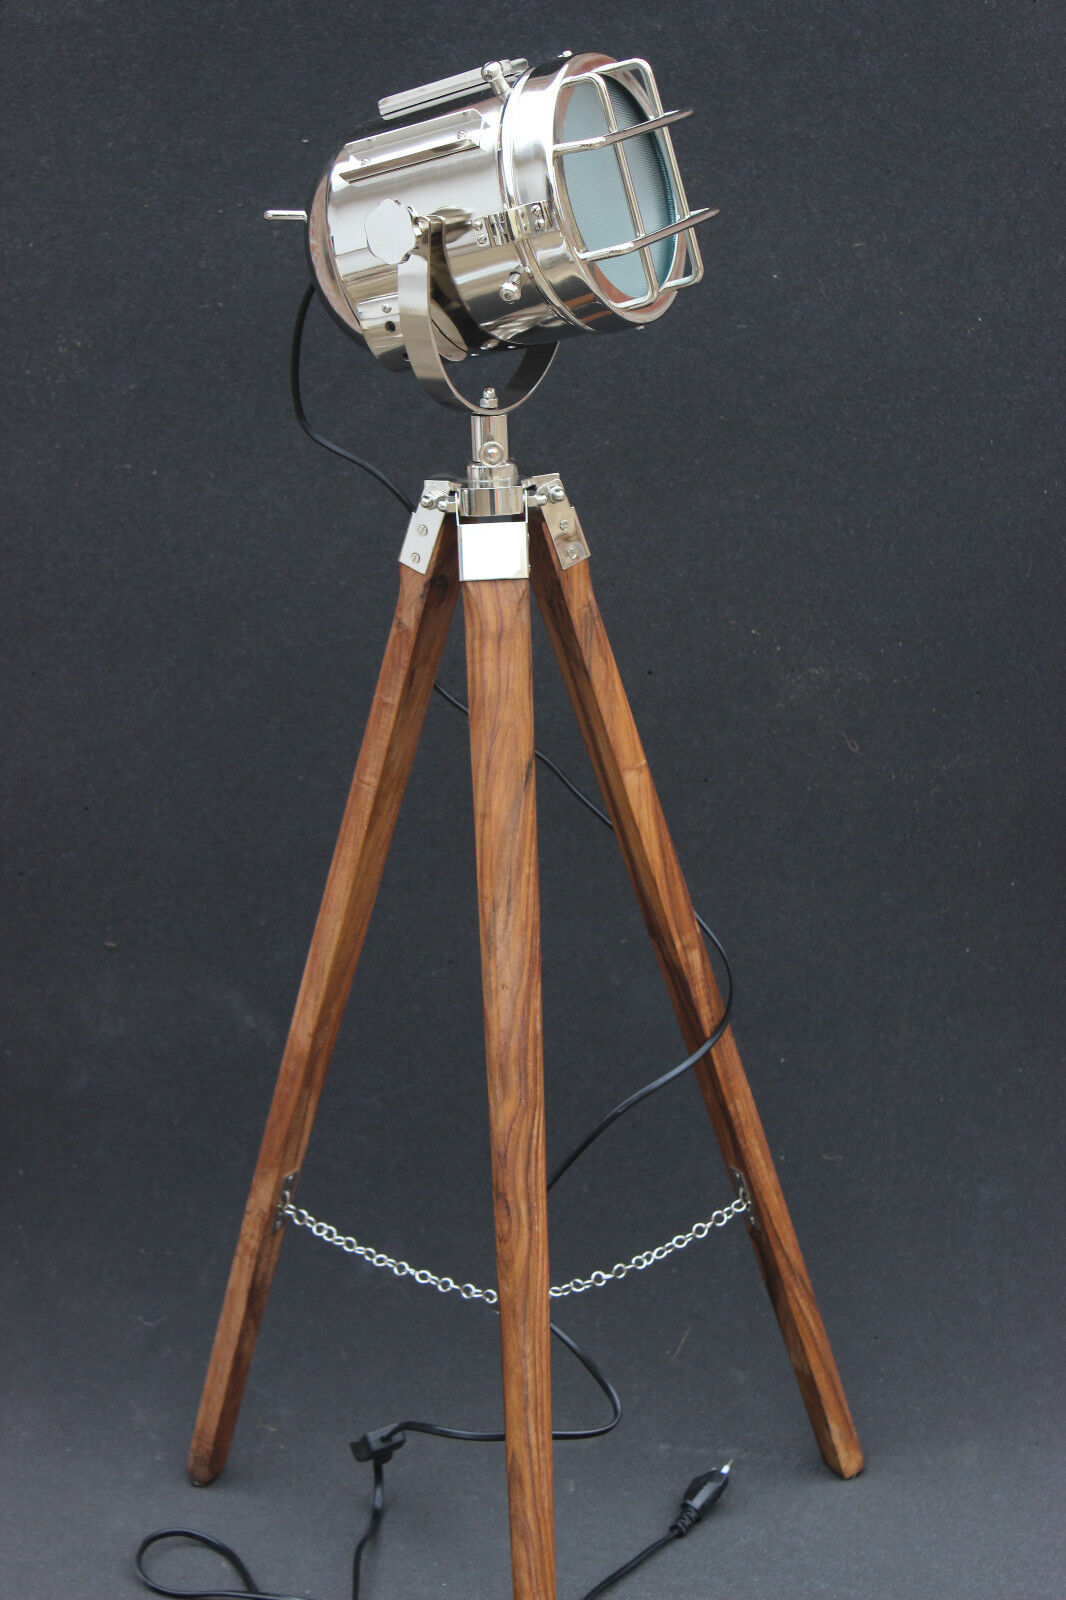 Hollywood led antique marine nautical spotlight decorative floor lamp tripod e27 ebay - Tripod spotlight lamp ...